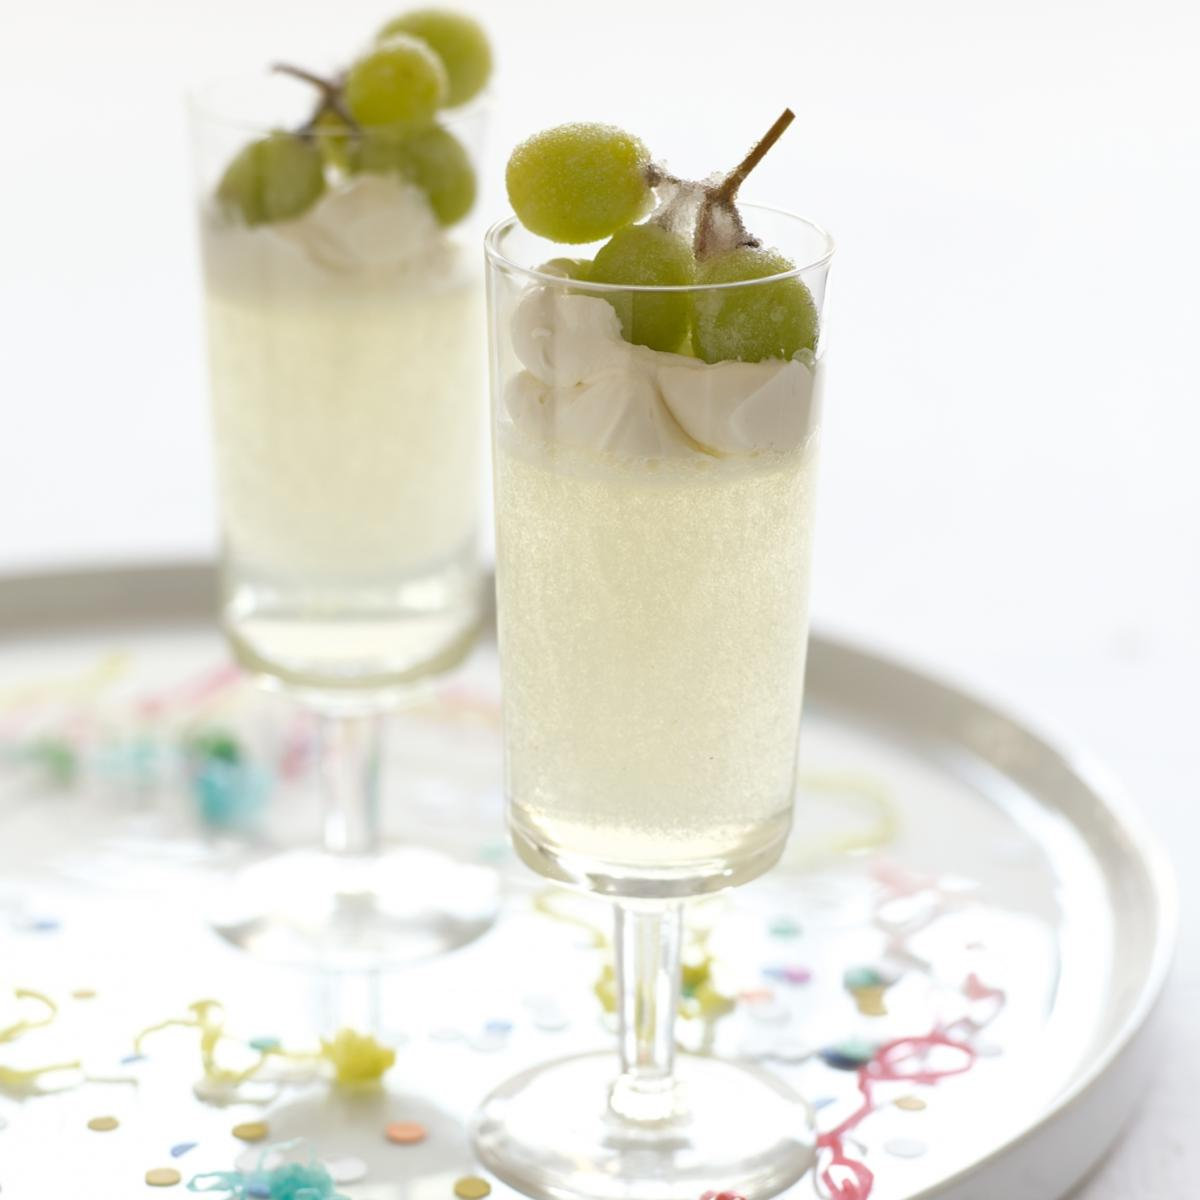 Happy champagne jellies with syllabub and frosted grapes